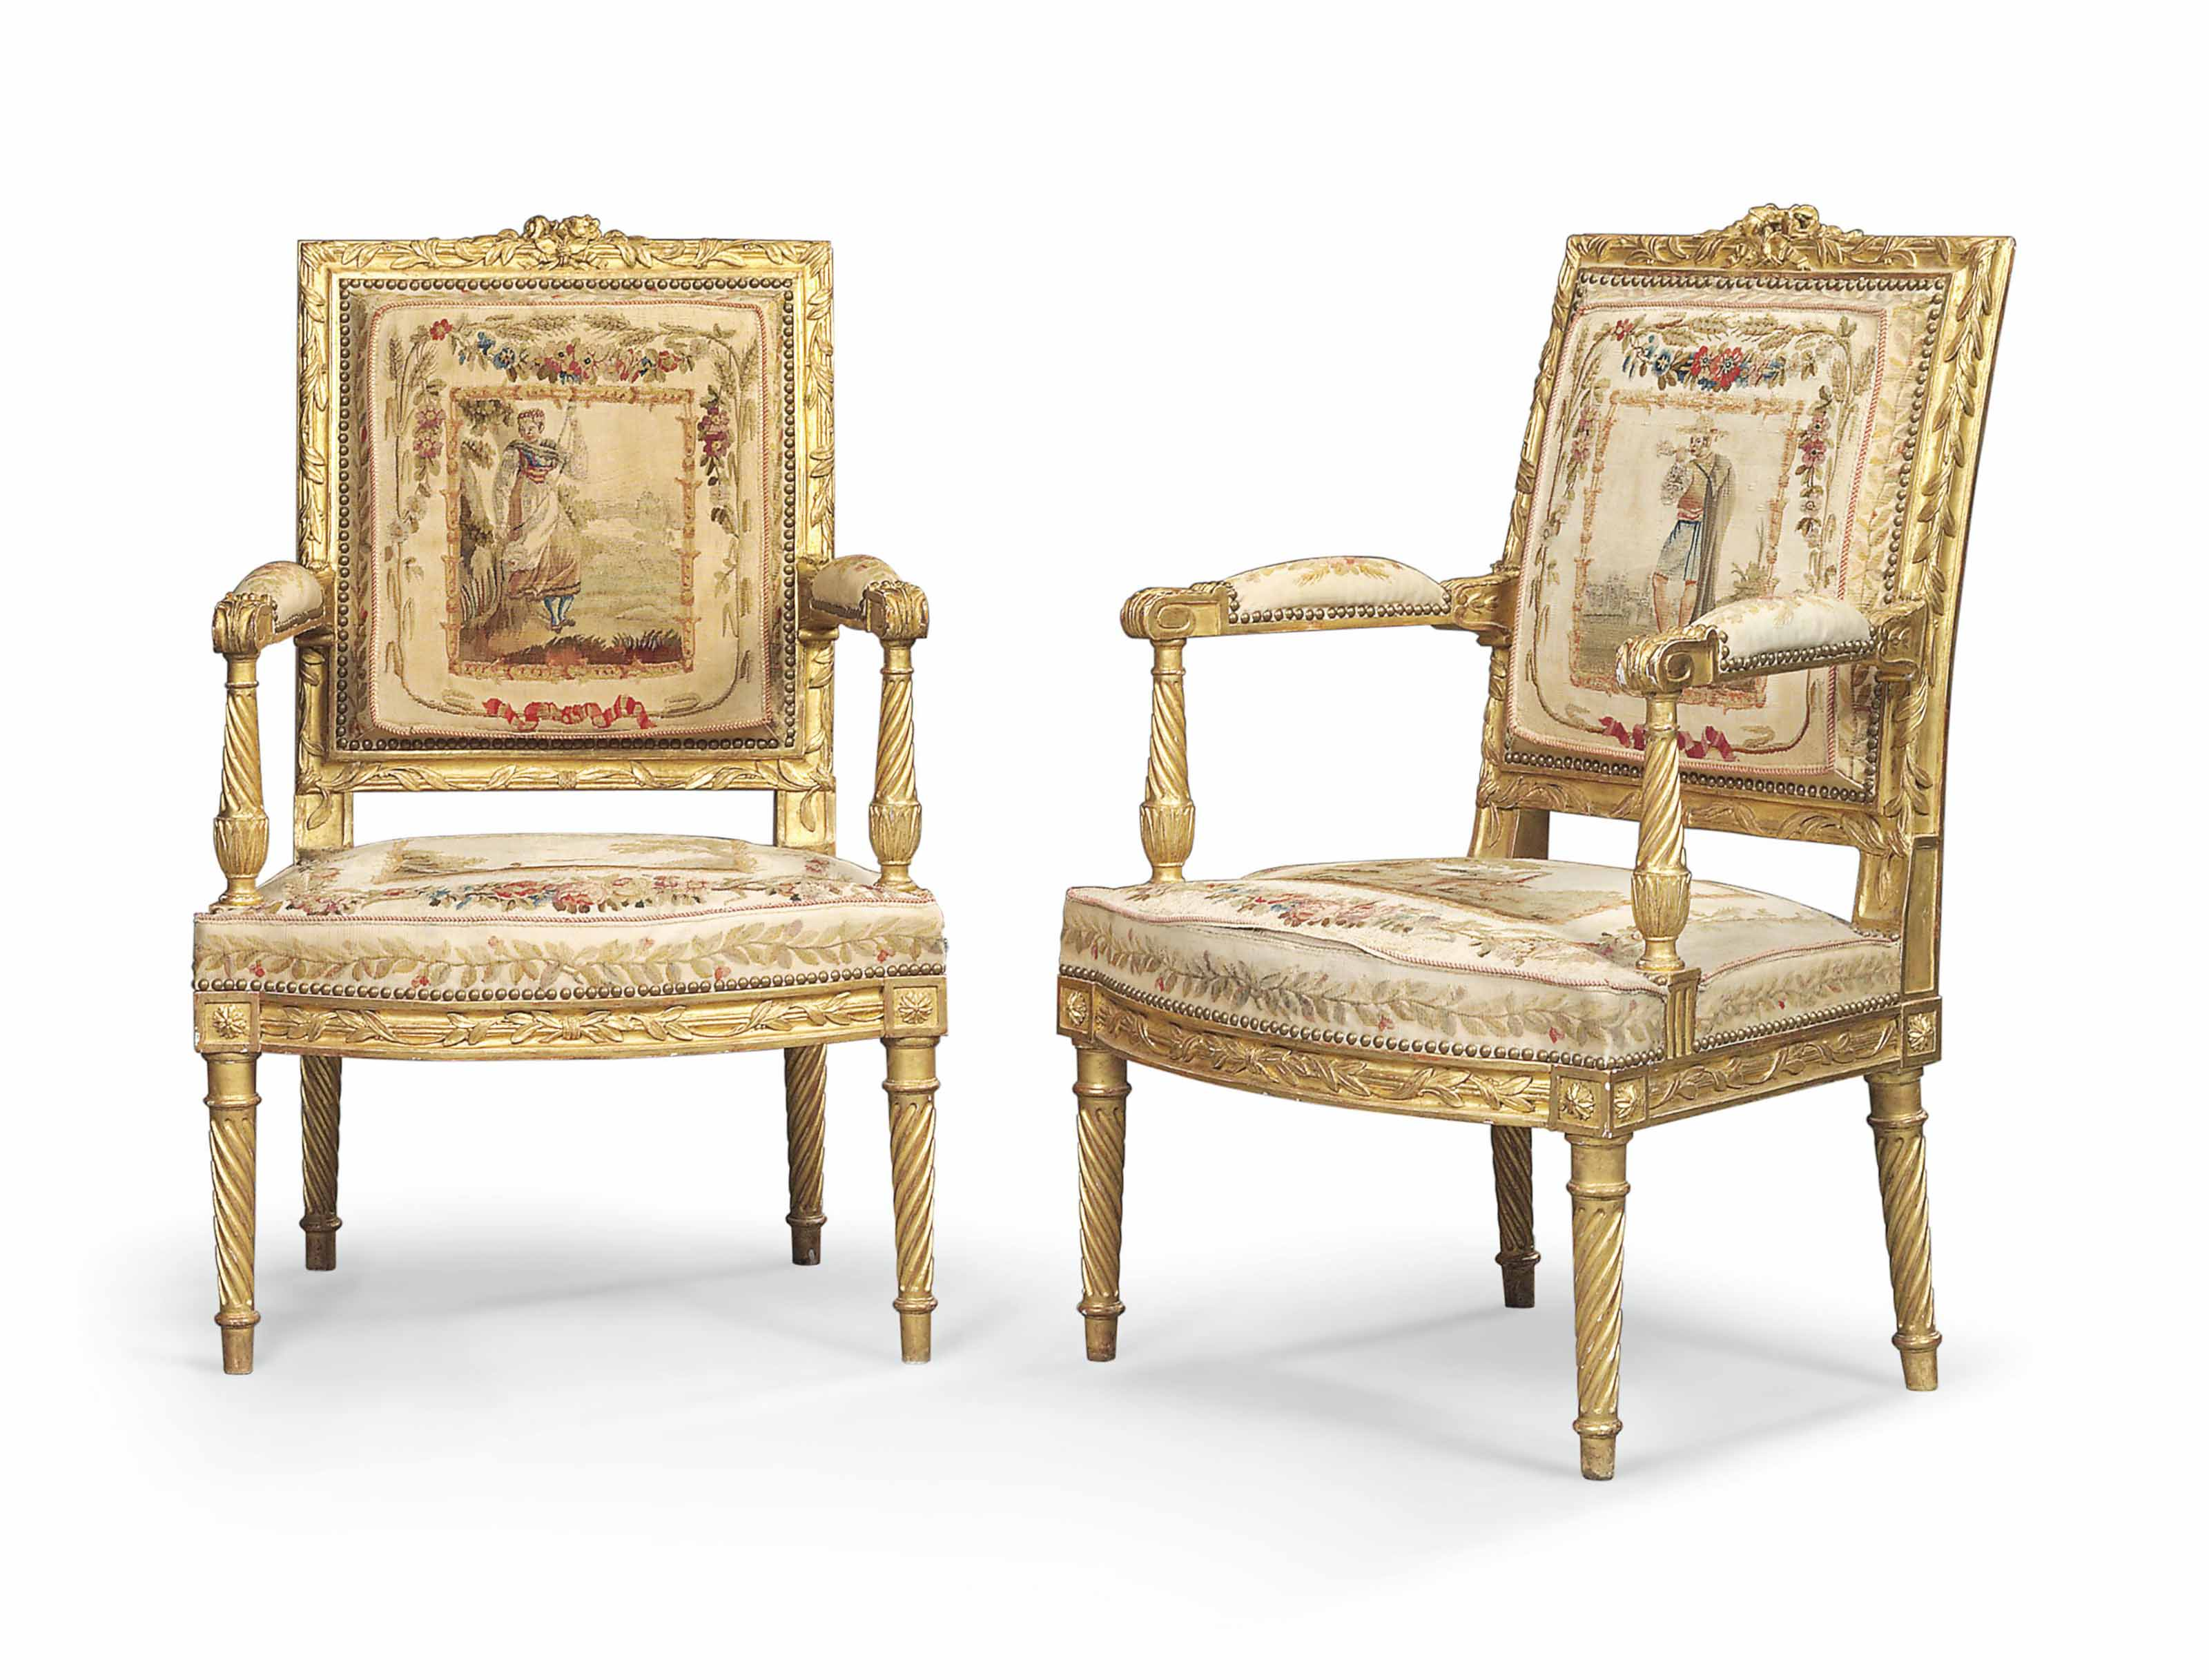 A PAIR OF EMPIRE GILTWOOD FAUTEUILS